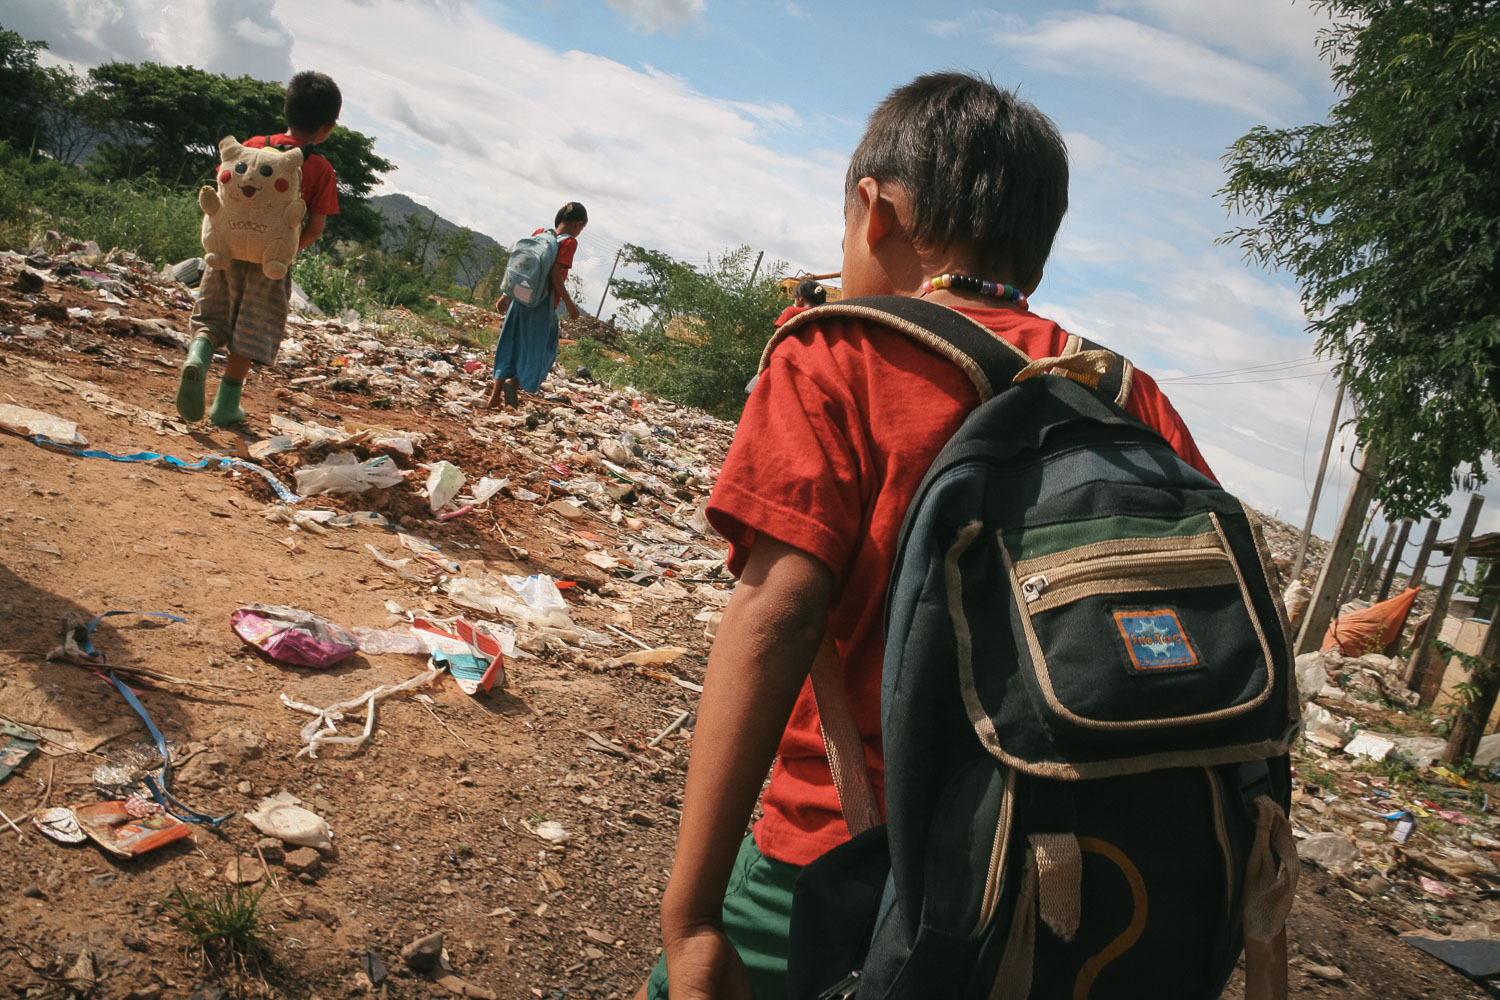 Schoolchildren walk through a garbage dump on their way home near Mae Sot, Tak Province, Thailand